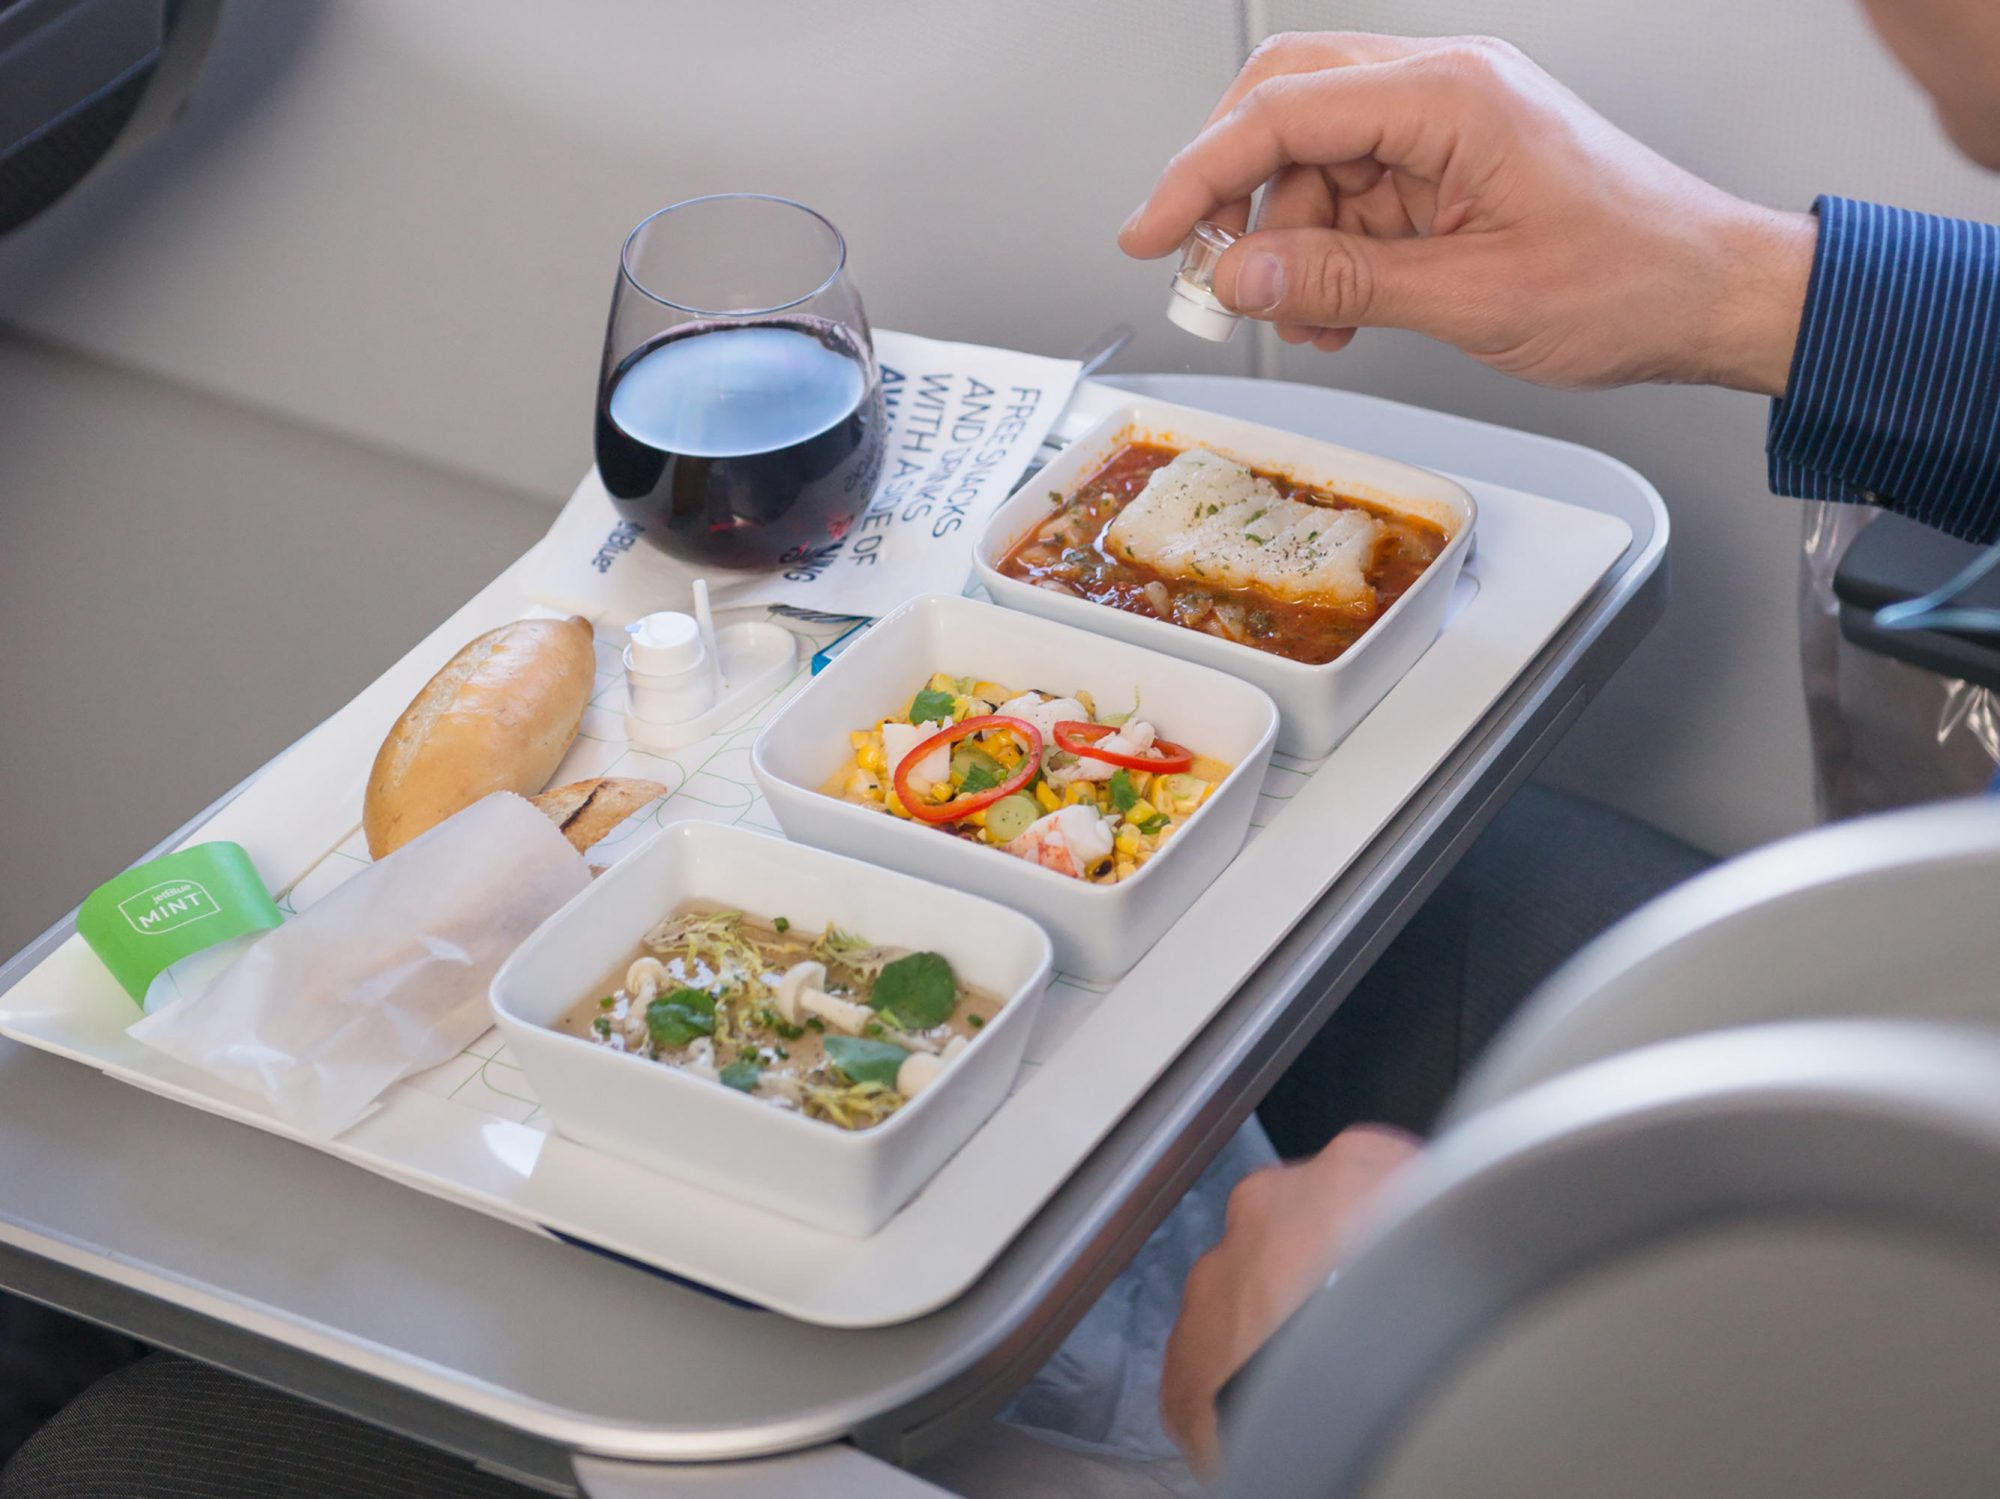 Here's How to Get the Healthiest Airline Meal When Traveling 1808w-JetBlue-mint-meal